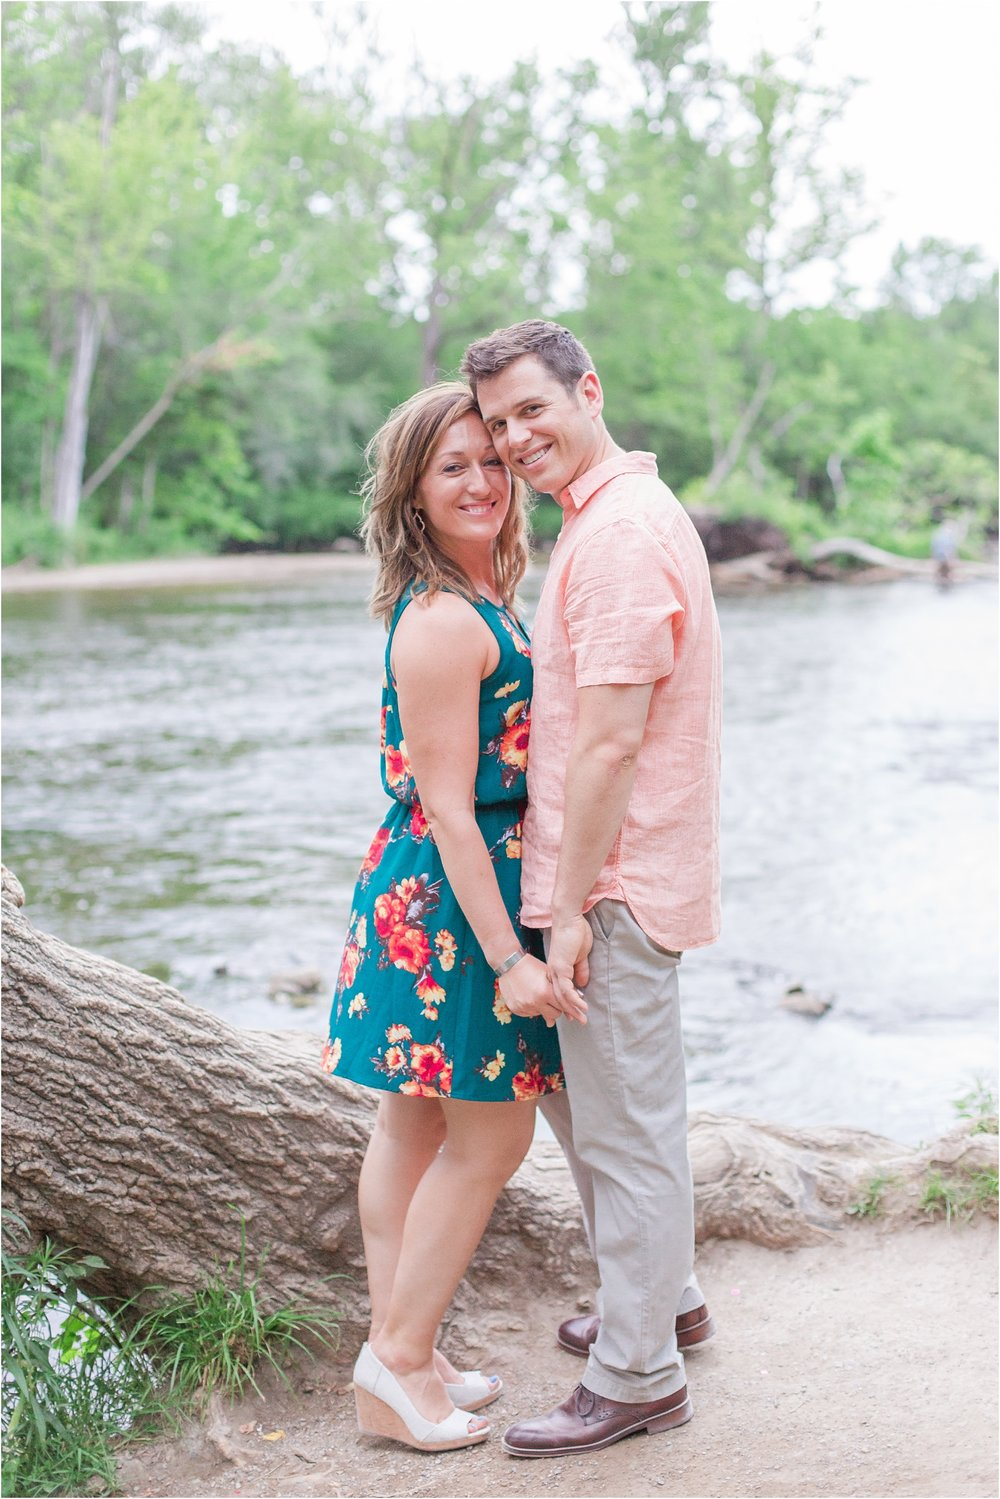 fun-adventurous-engagement-photos-at-the-nichols-arboretum-in-ann-arbor-mi-by-courtney-carolyn-photography_0008.jpg